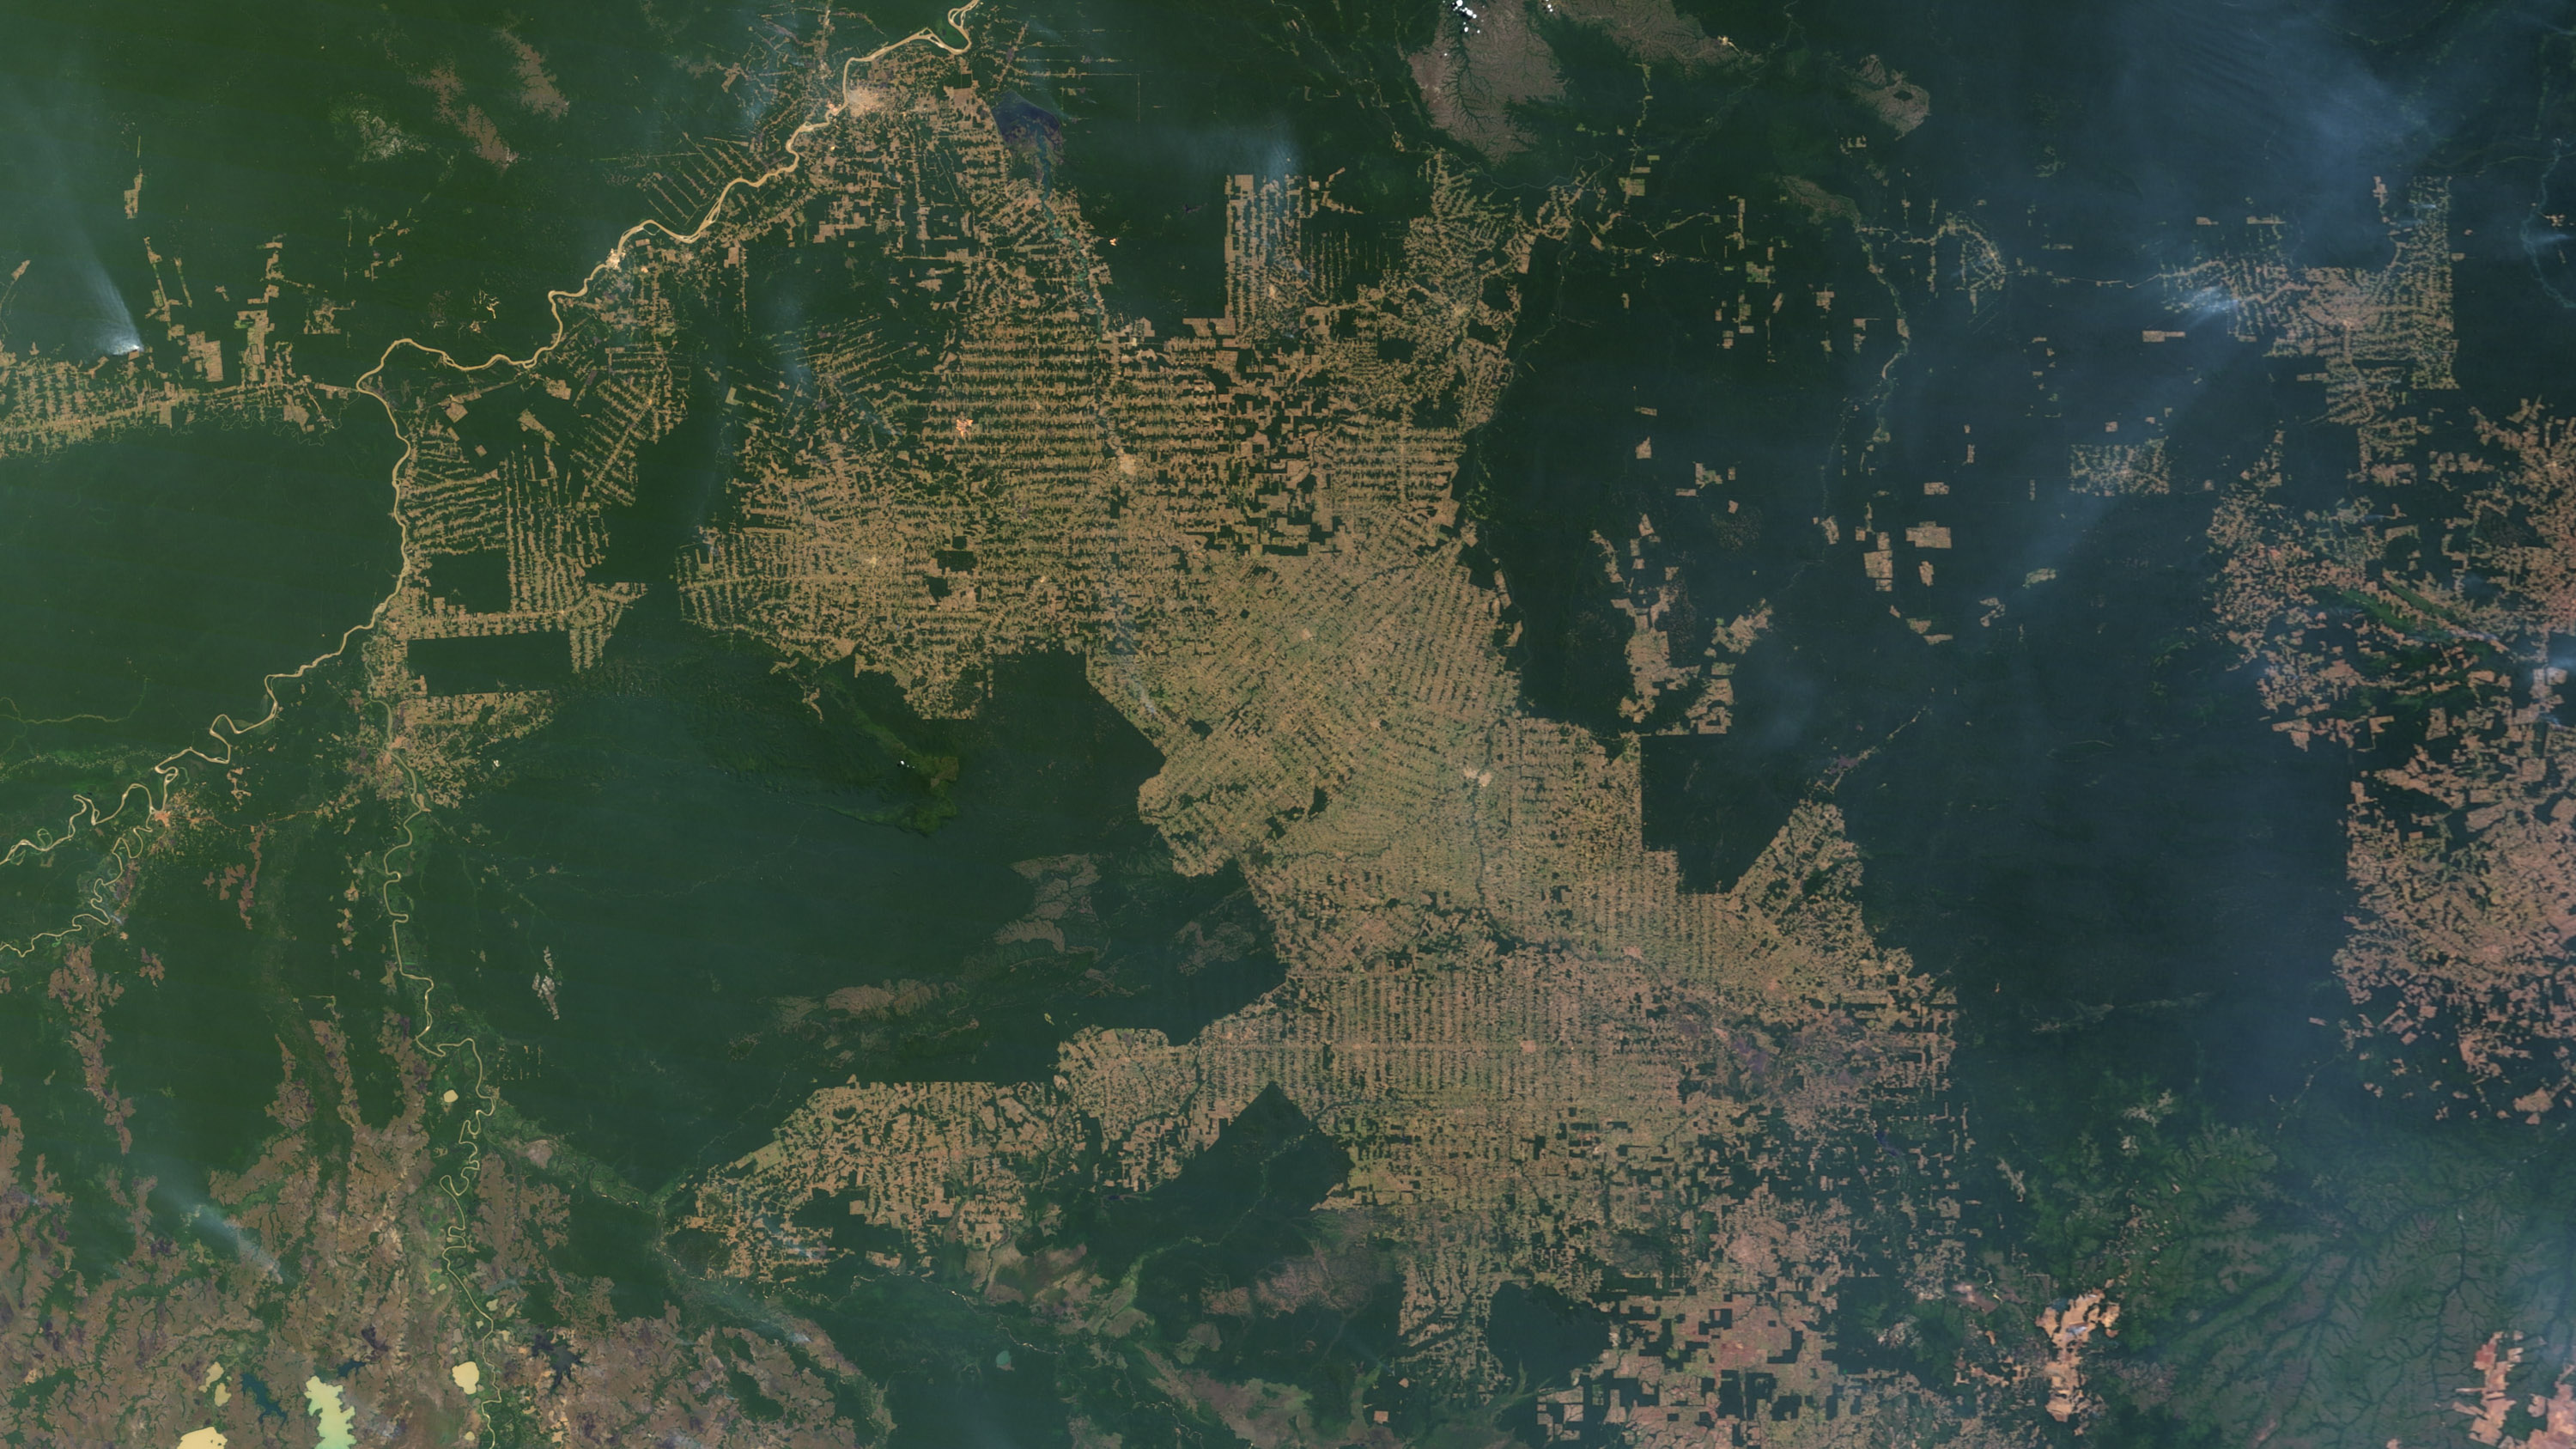 Deforestation in the state of Rondônia, in western Brazil.